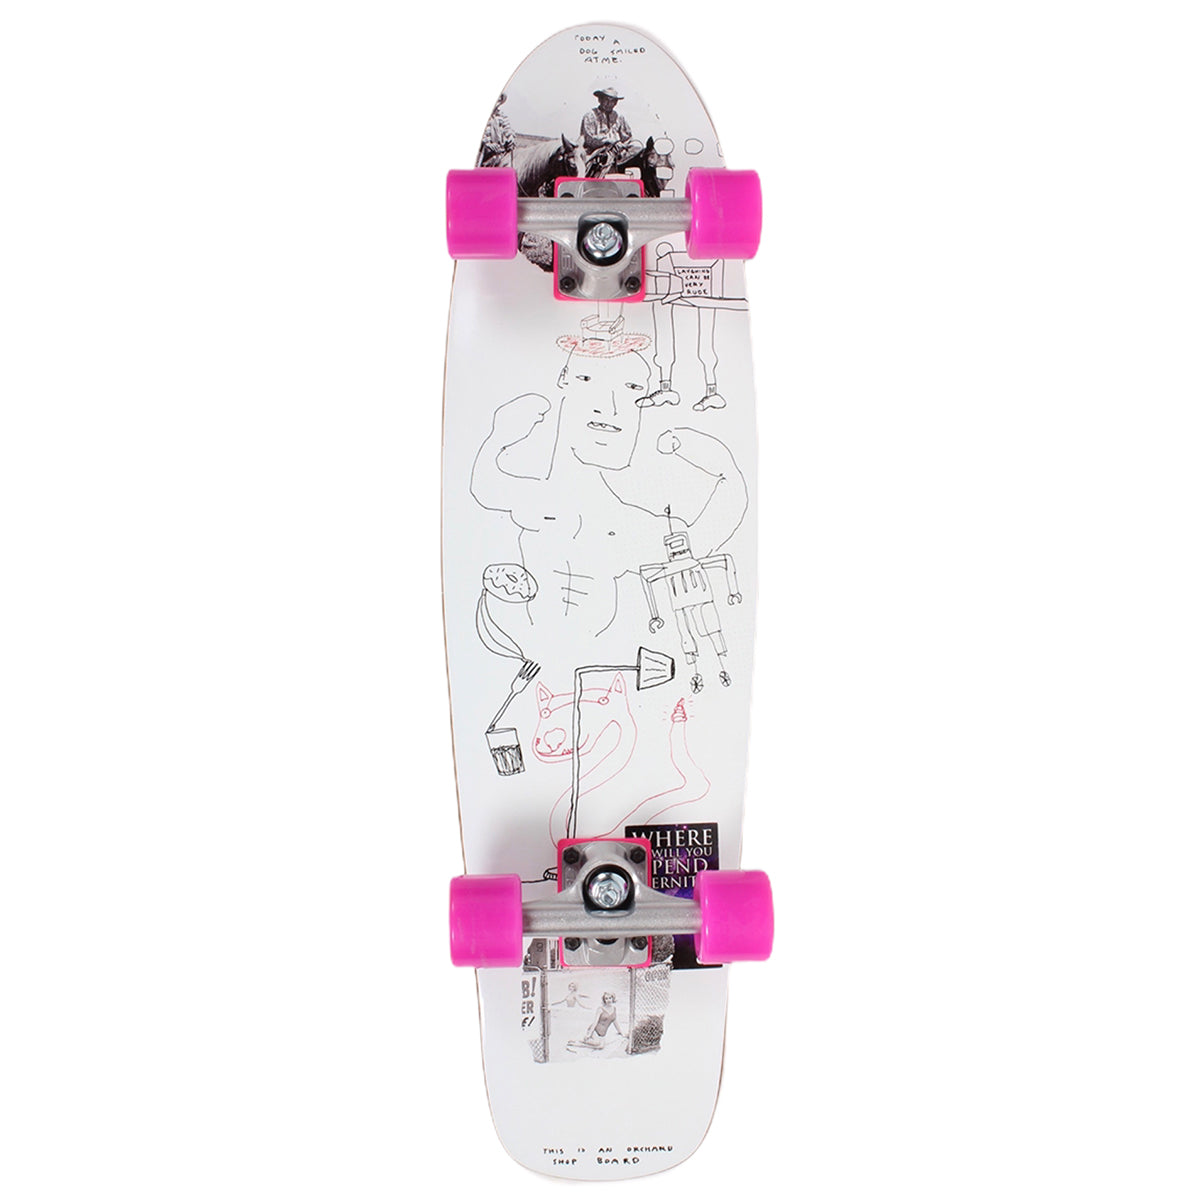 Orchard Sageman Smiling Dog Mini Cruiser Complete 7.8 X 29